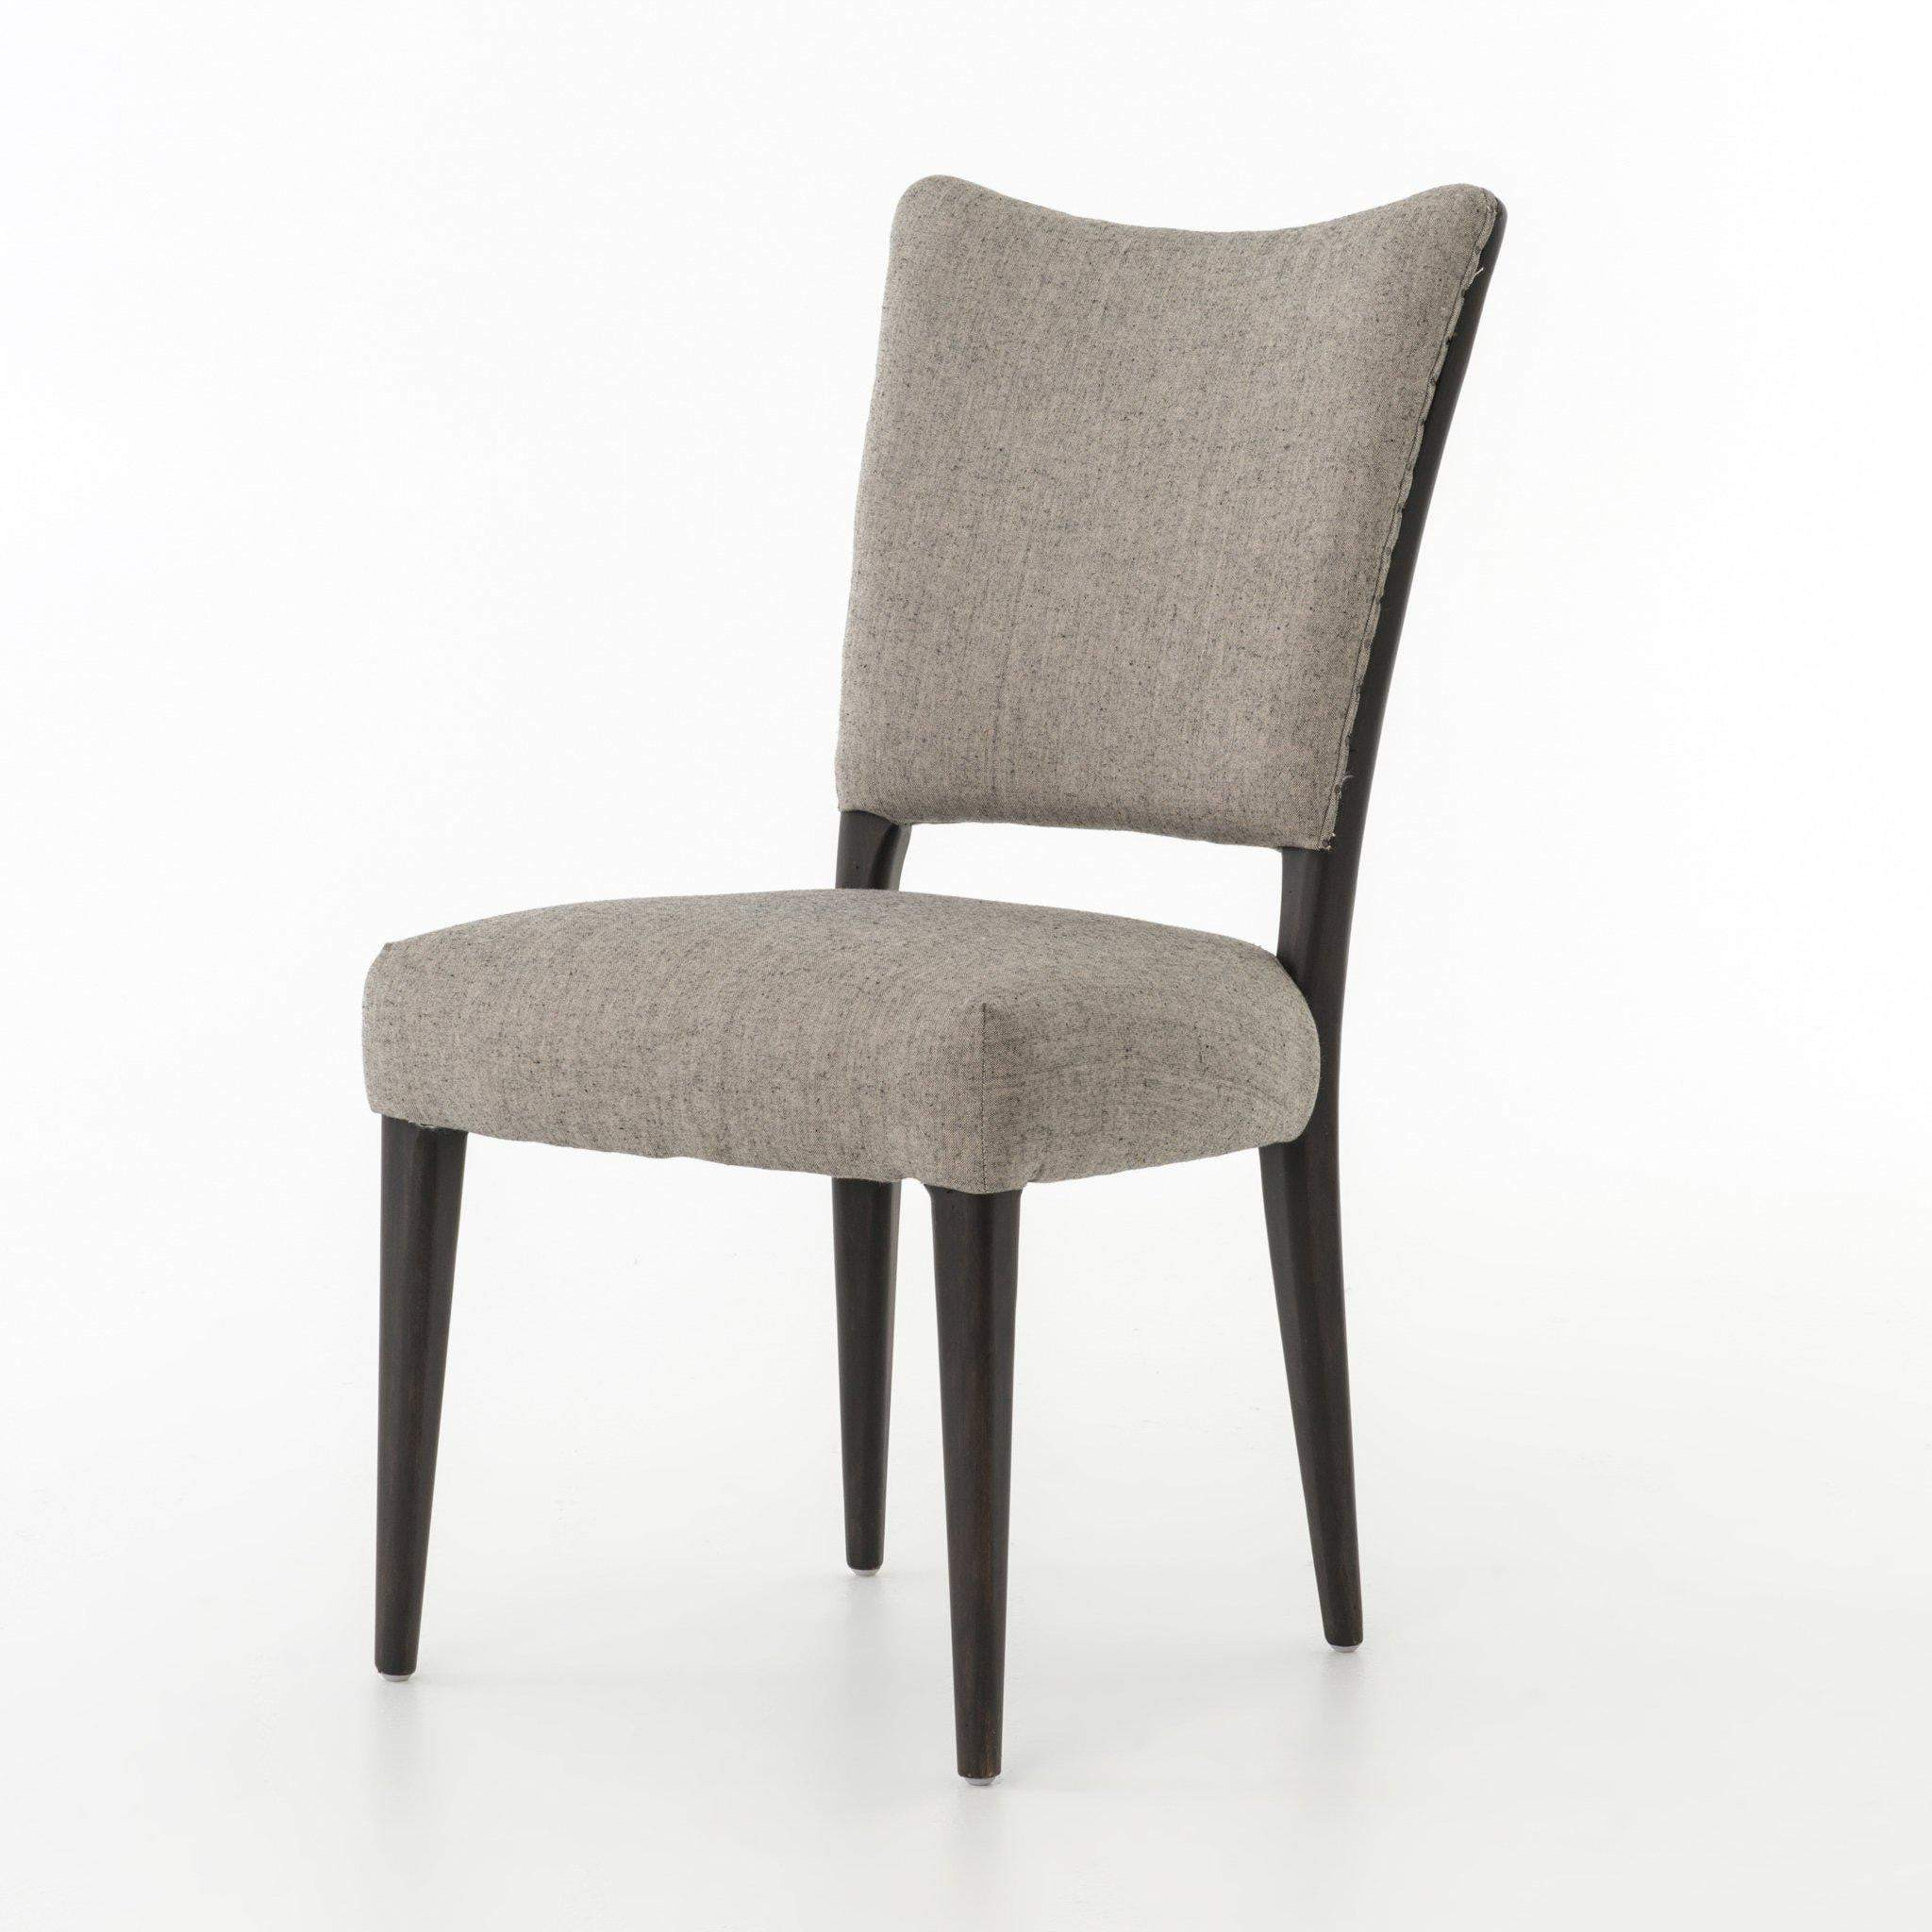 Lennox Dining Chair (Ives White) - Abbott Collection - Parker Gwen